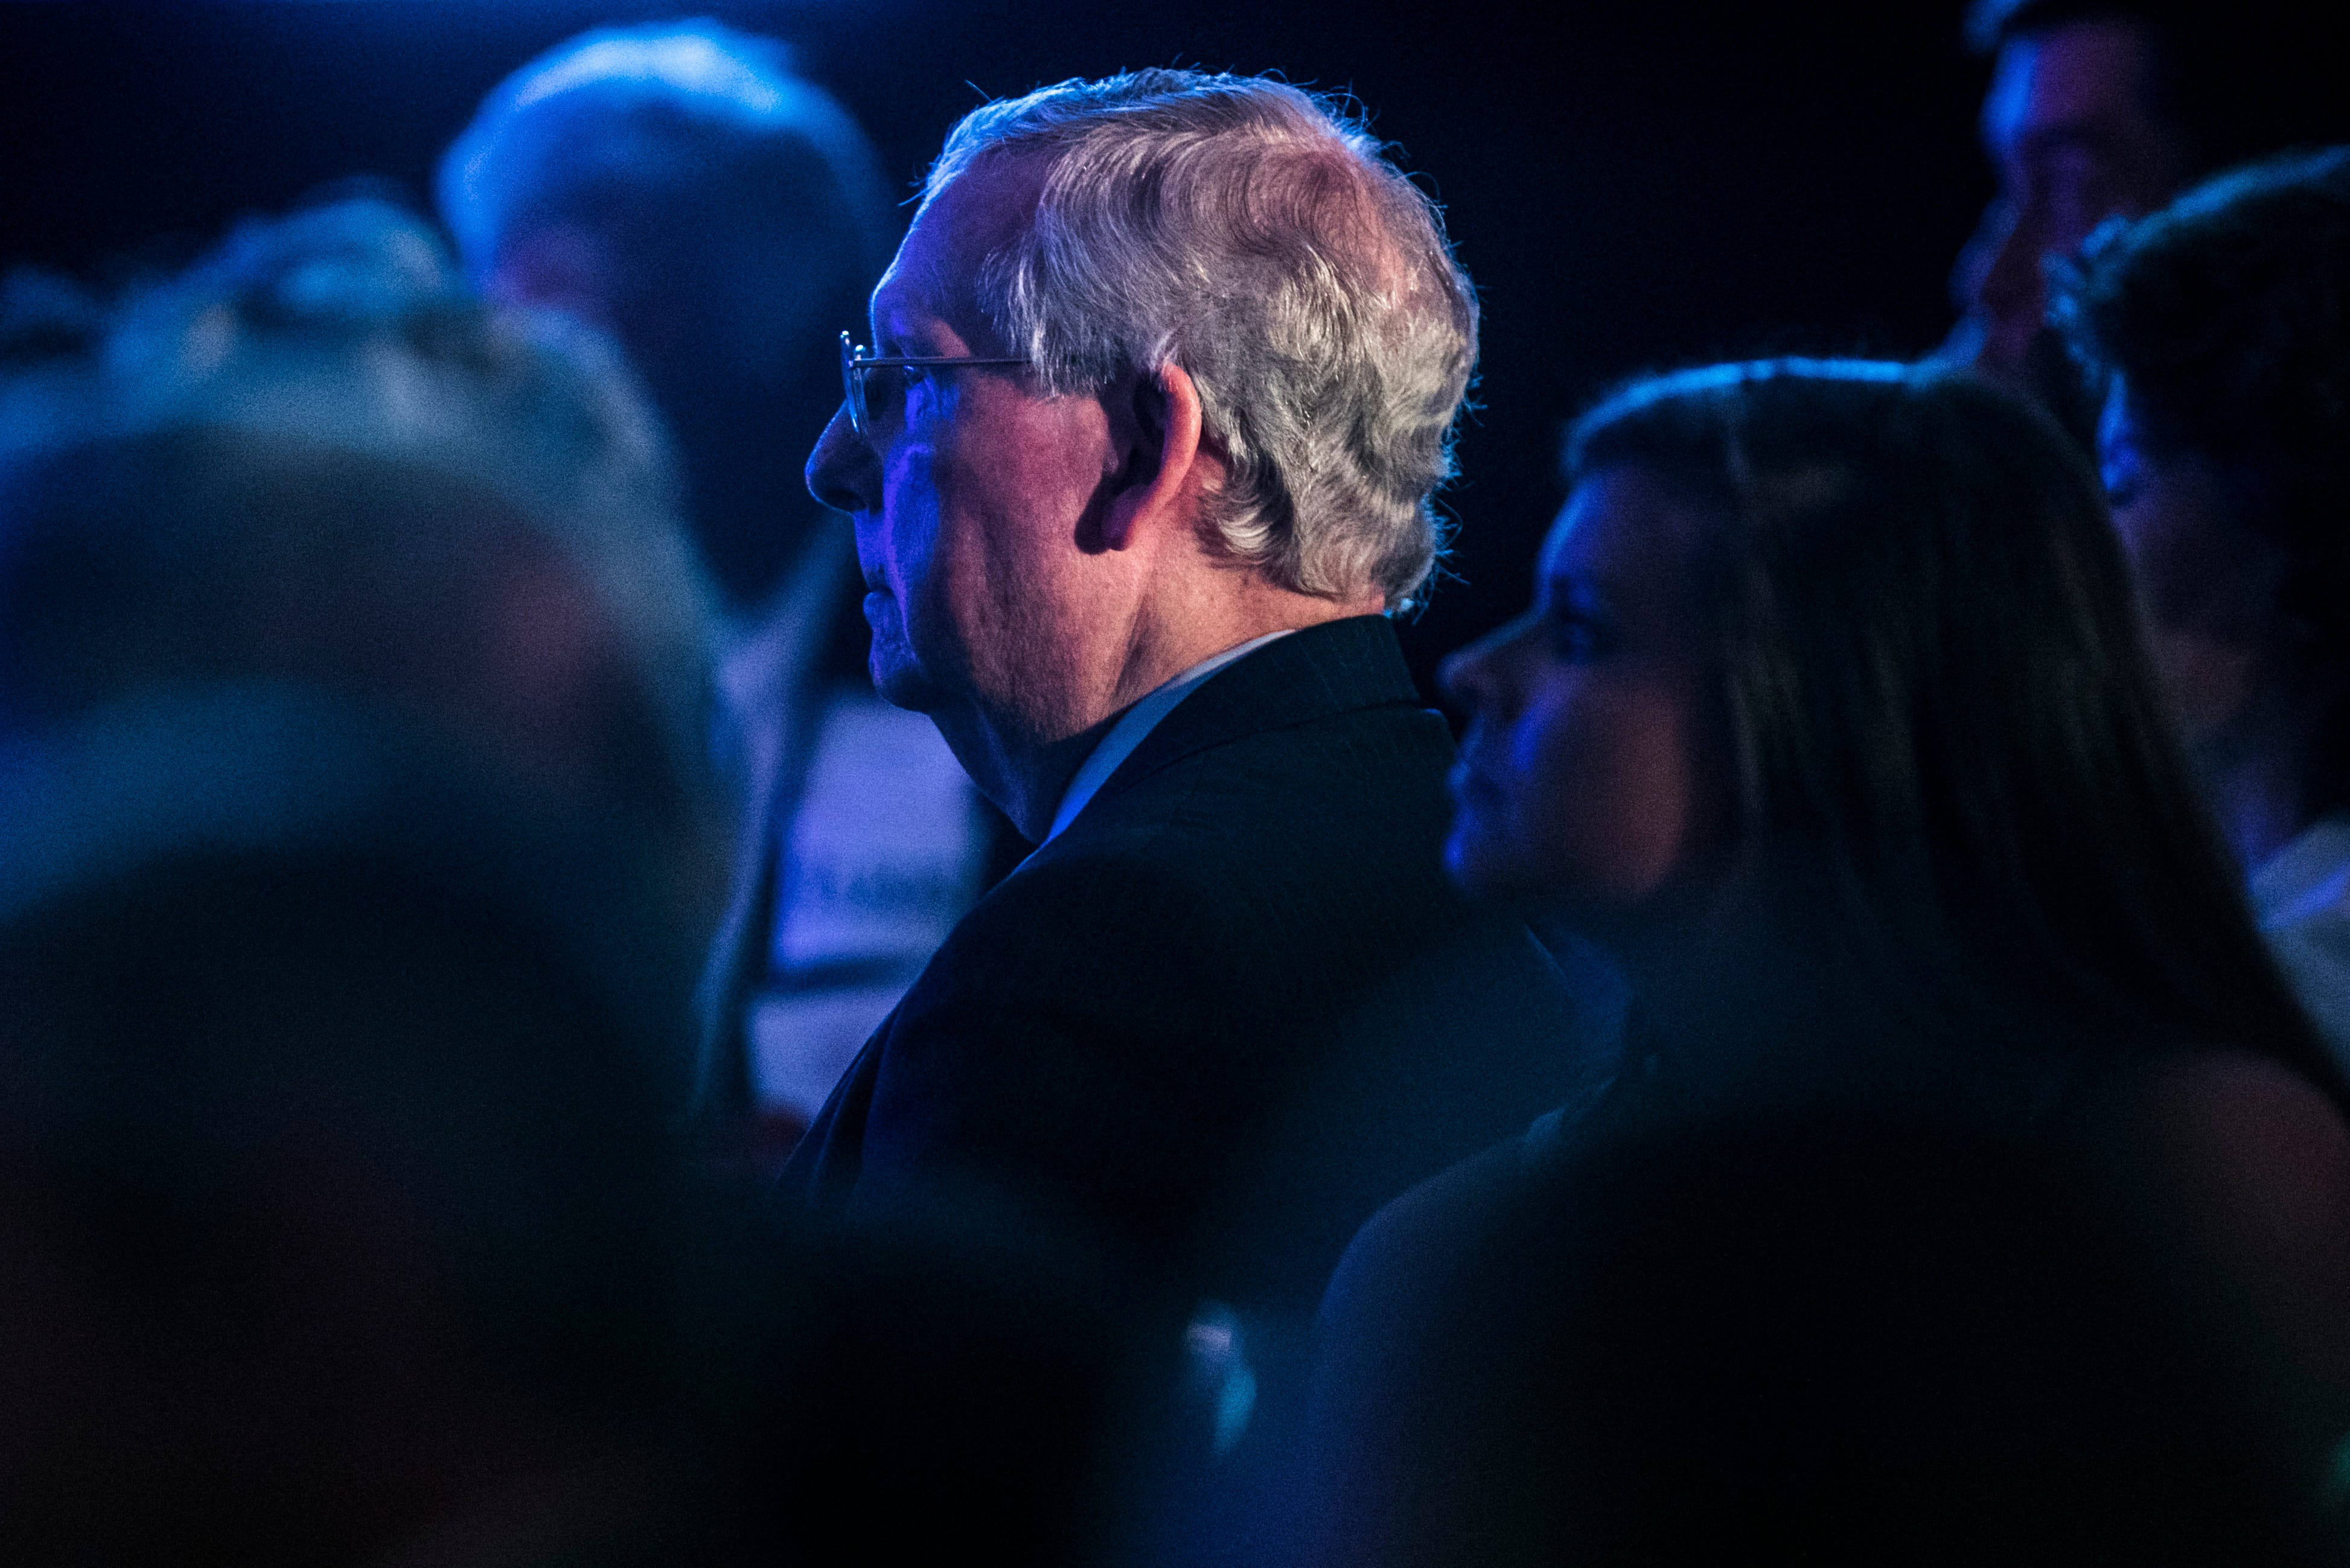 Where's Mitch? McConnell keeping his head down during historic shutdown